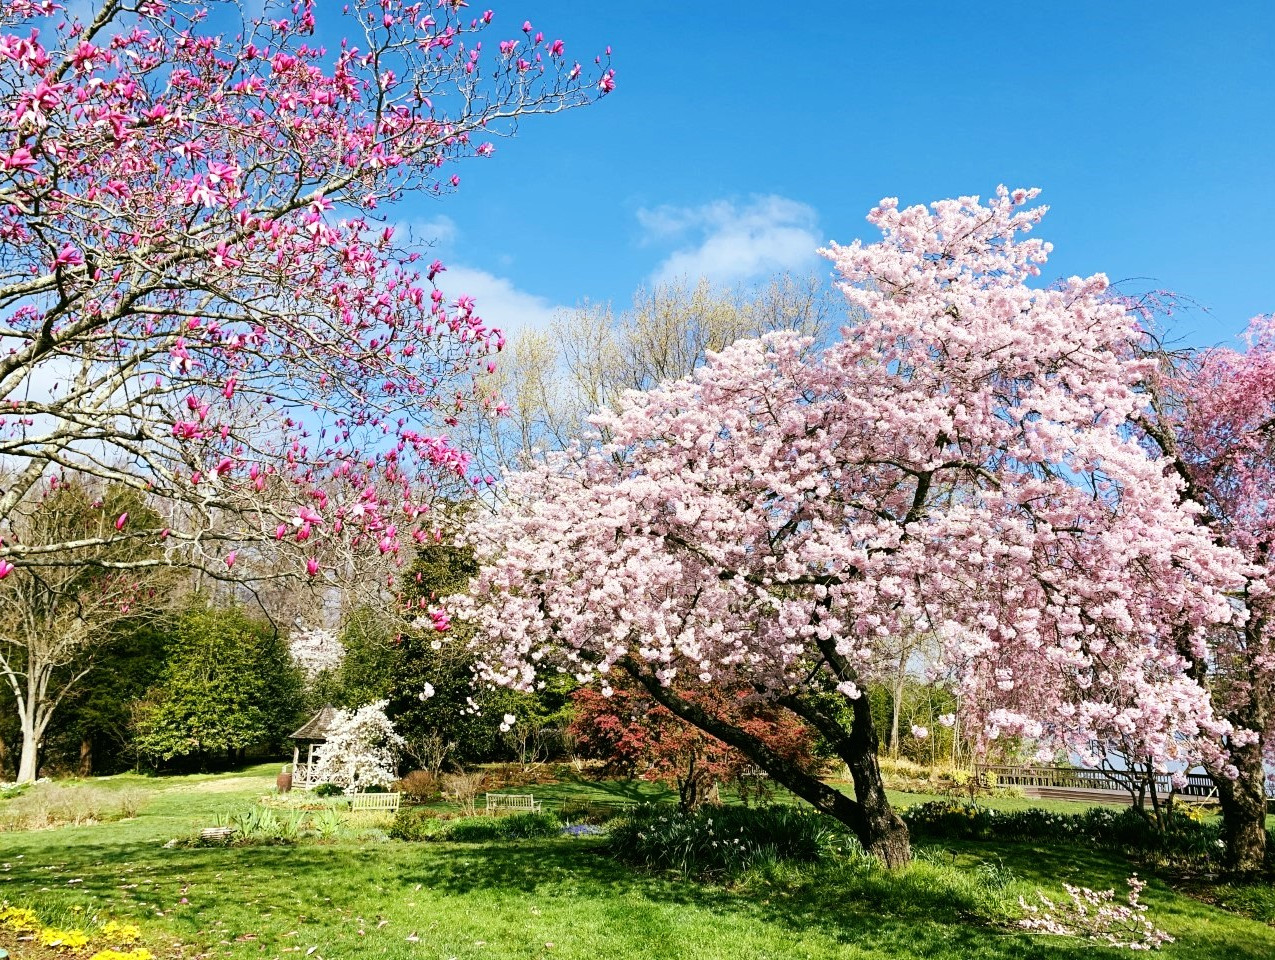 Magnolia 'Galaxy' on the left and Cherry